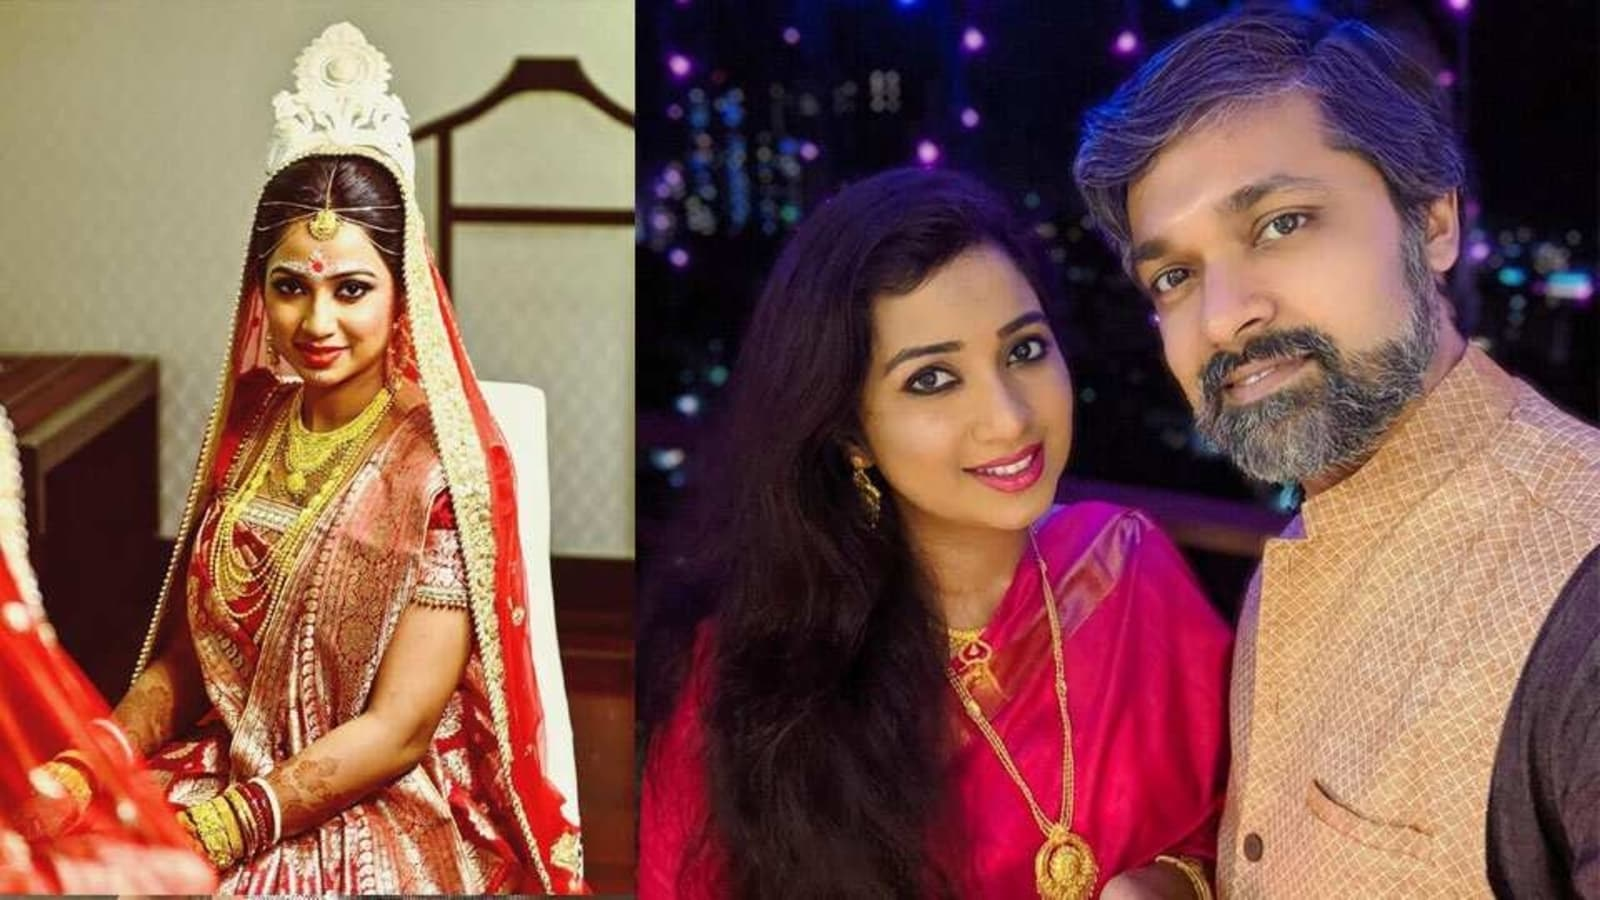 Happy birthday Shreya Ghoshal: Here's how childhood sweetheart Shiladitya M proposed to her in Goa - Hindustan Times